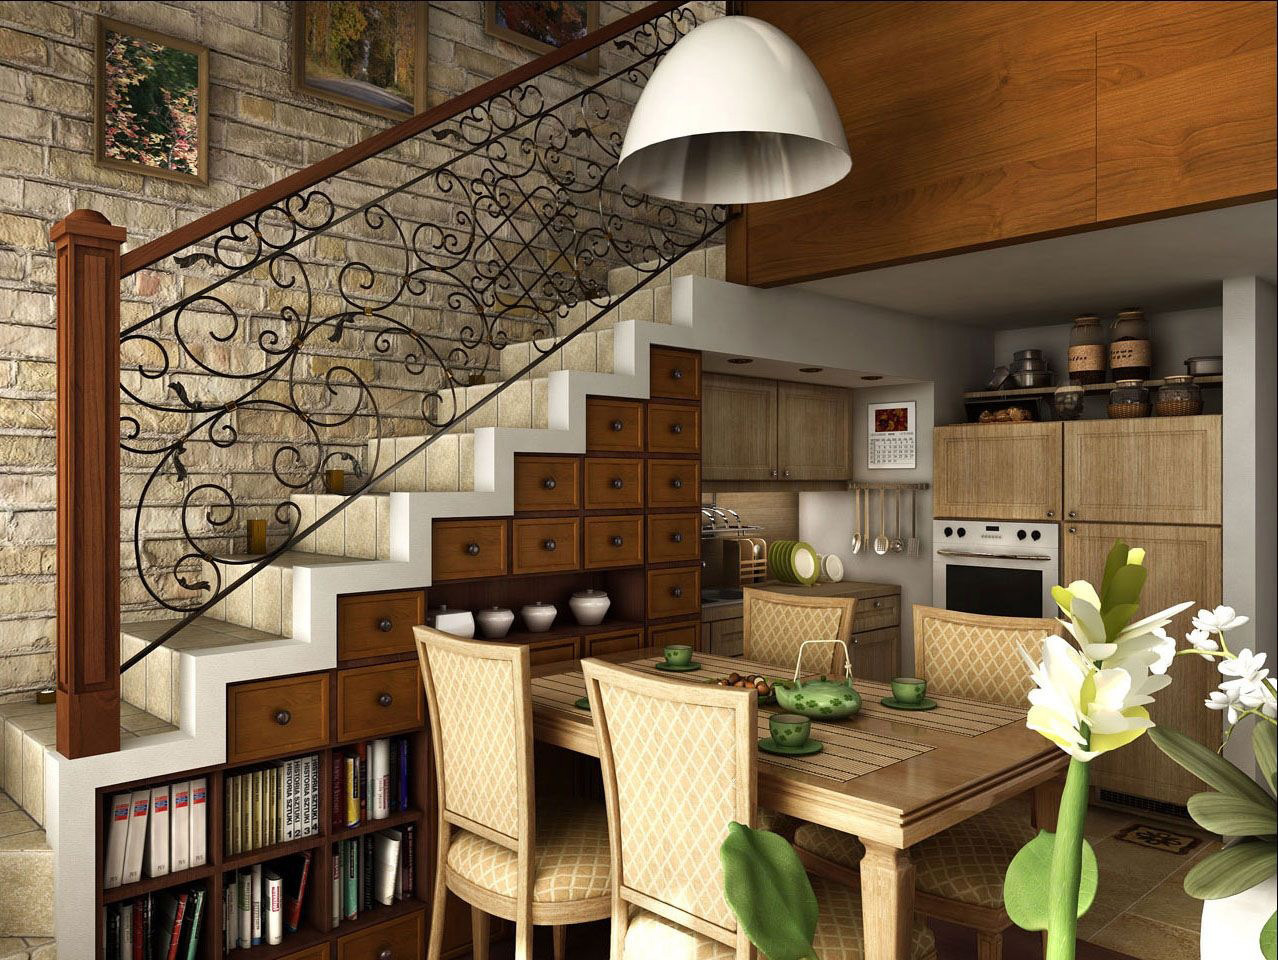 Staircase with under storage